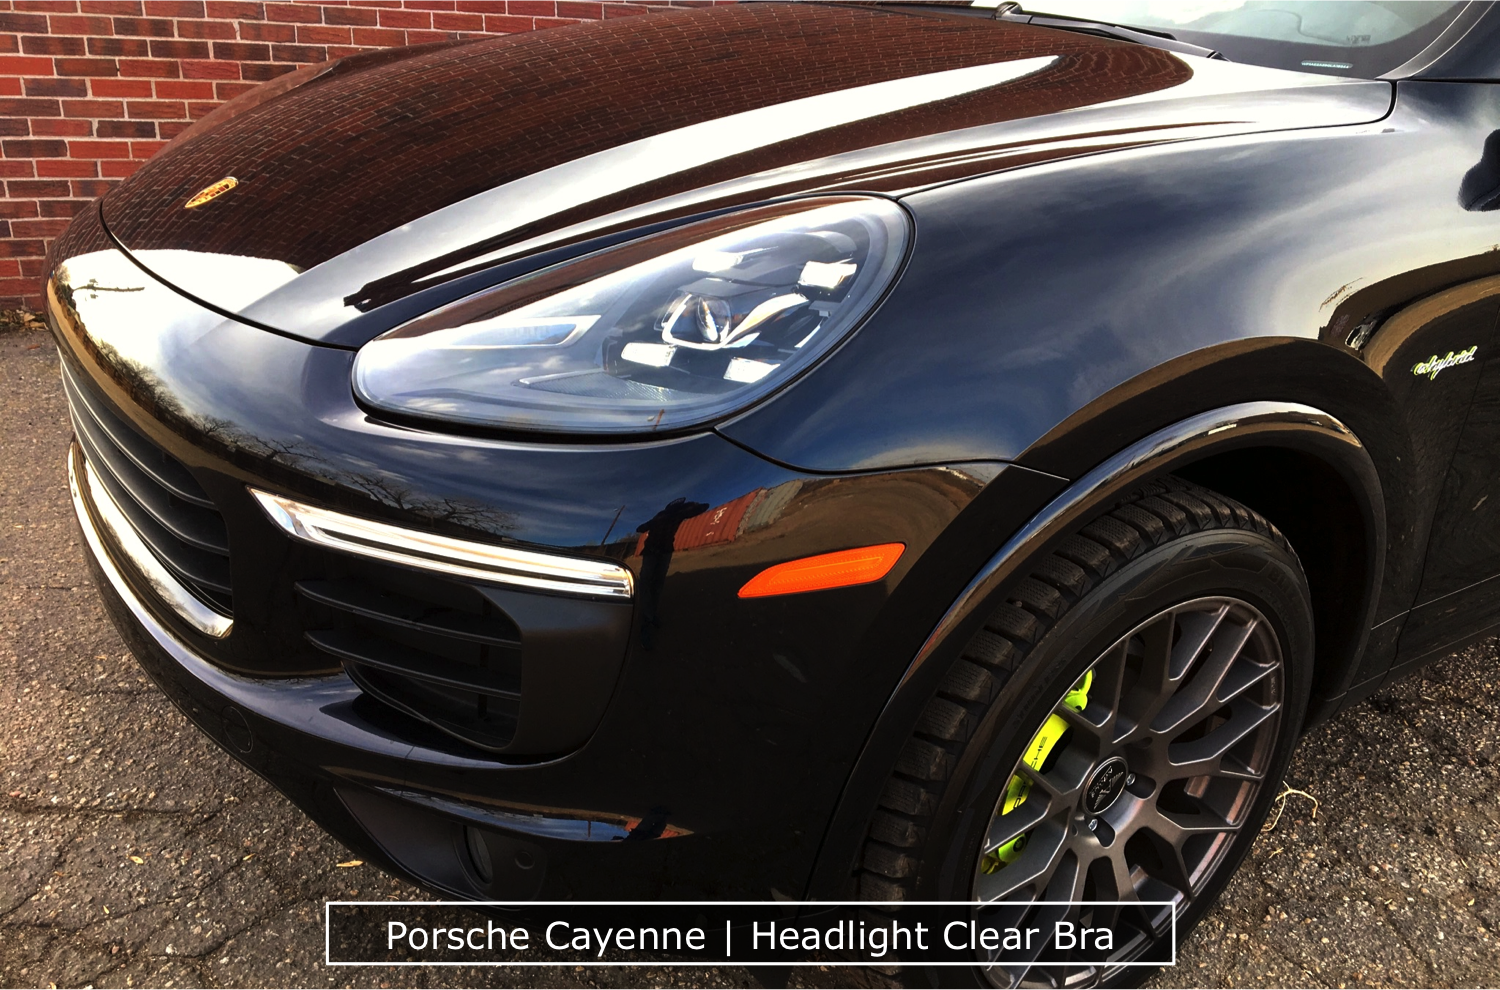 Headlight Clear Bra on A Cayenne by Denver Auto Tint